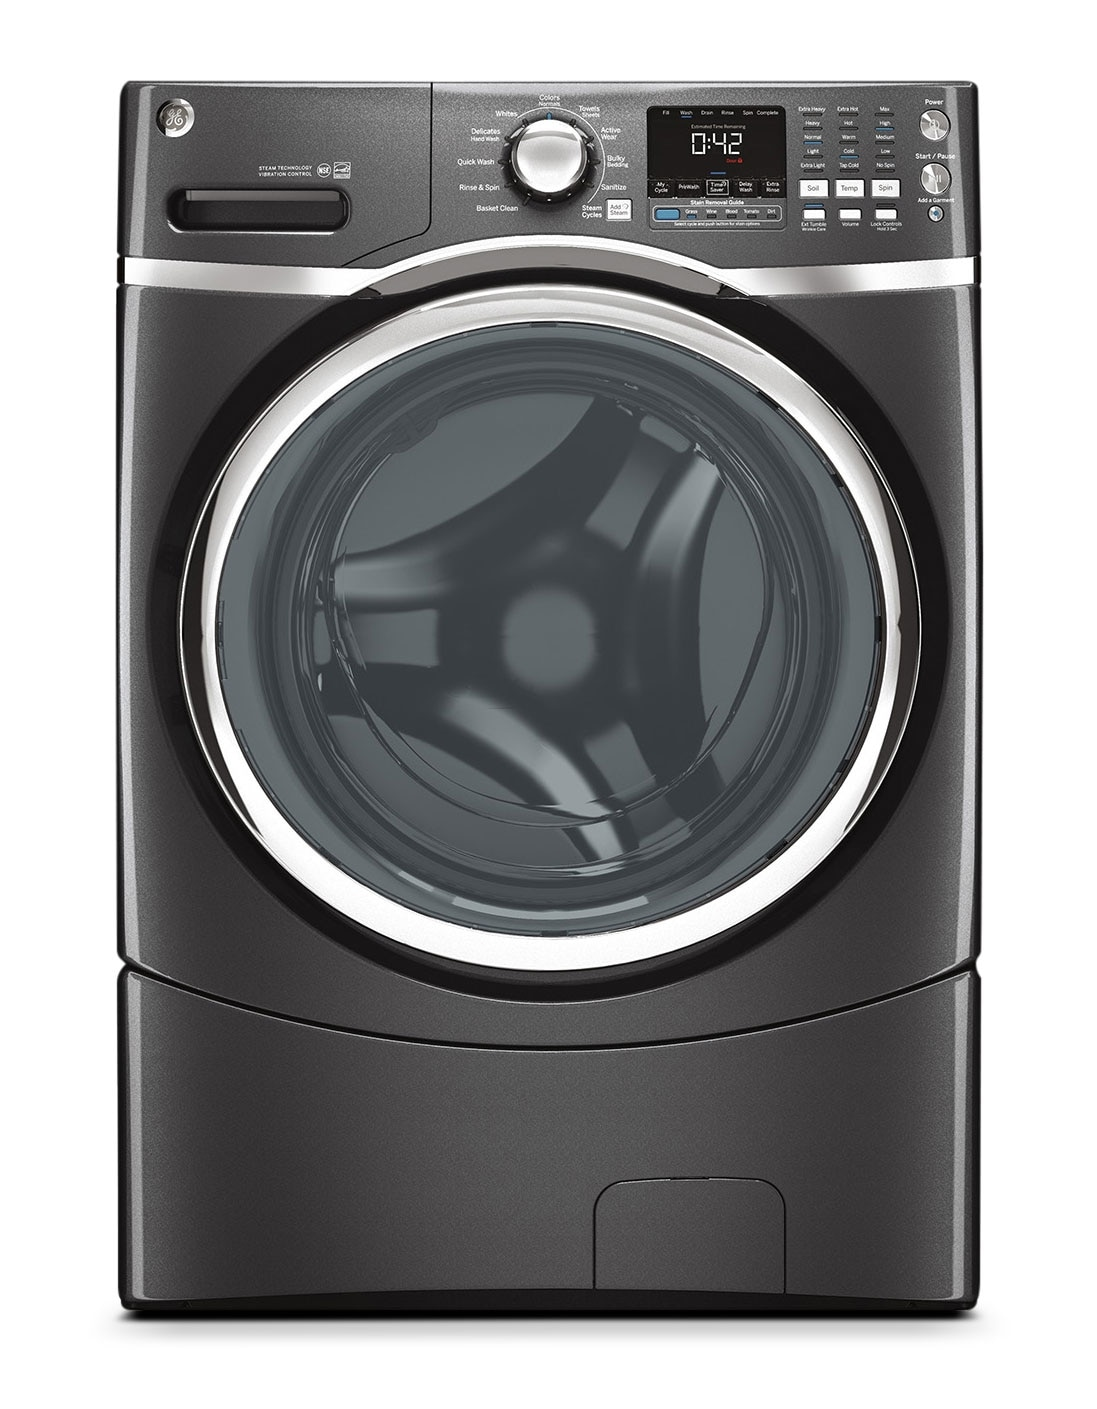 Washers and Dryers - GE Diamond Grey Front-Load Washer (5.0 Cu. Ft. IEC) - GFWS1705HDG